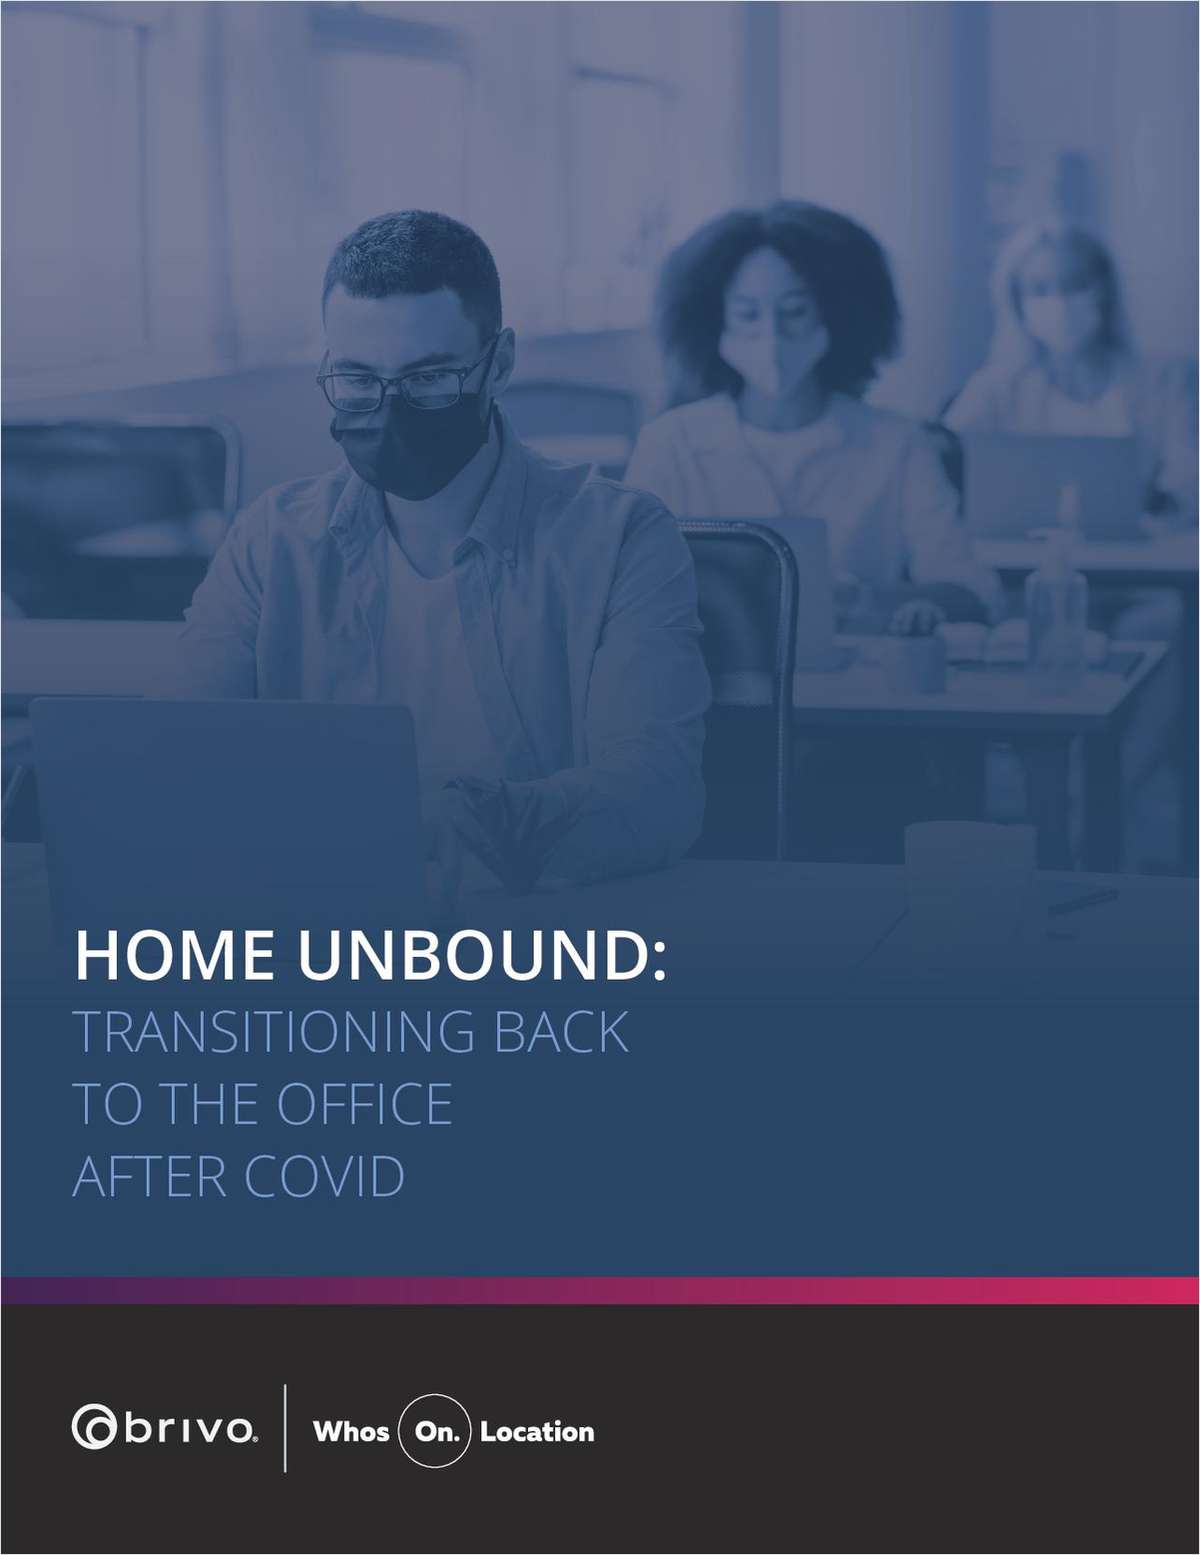 Home Unbound: Transitioning Back to the Office After COVID